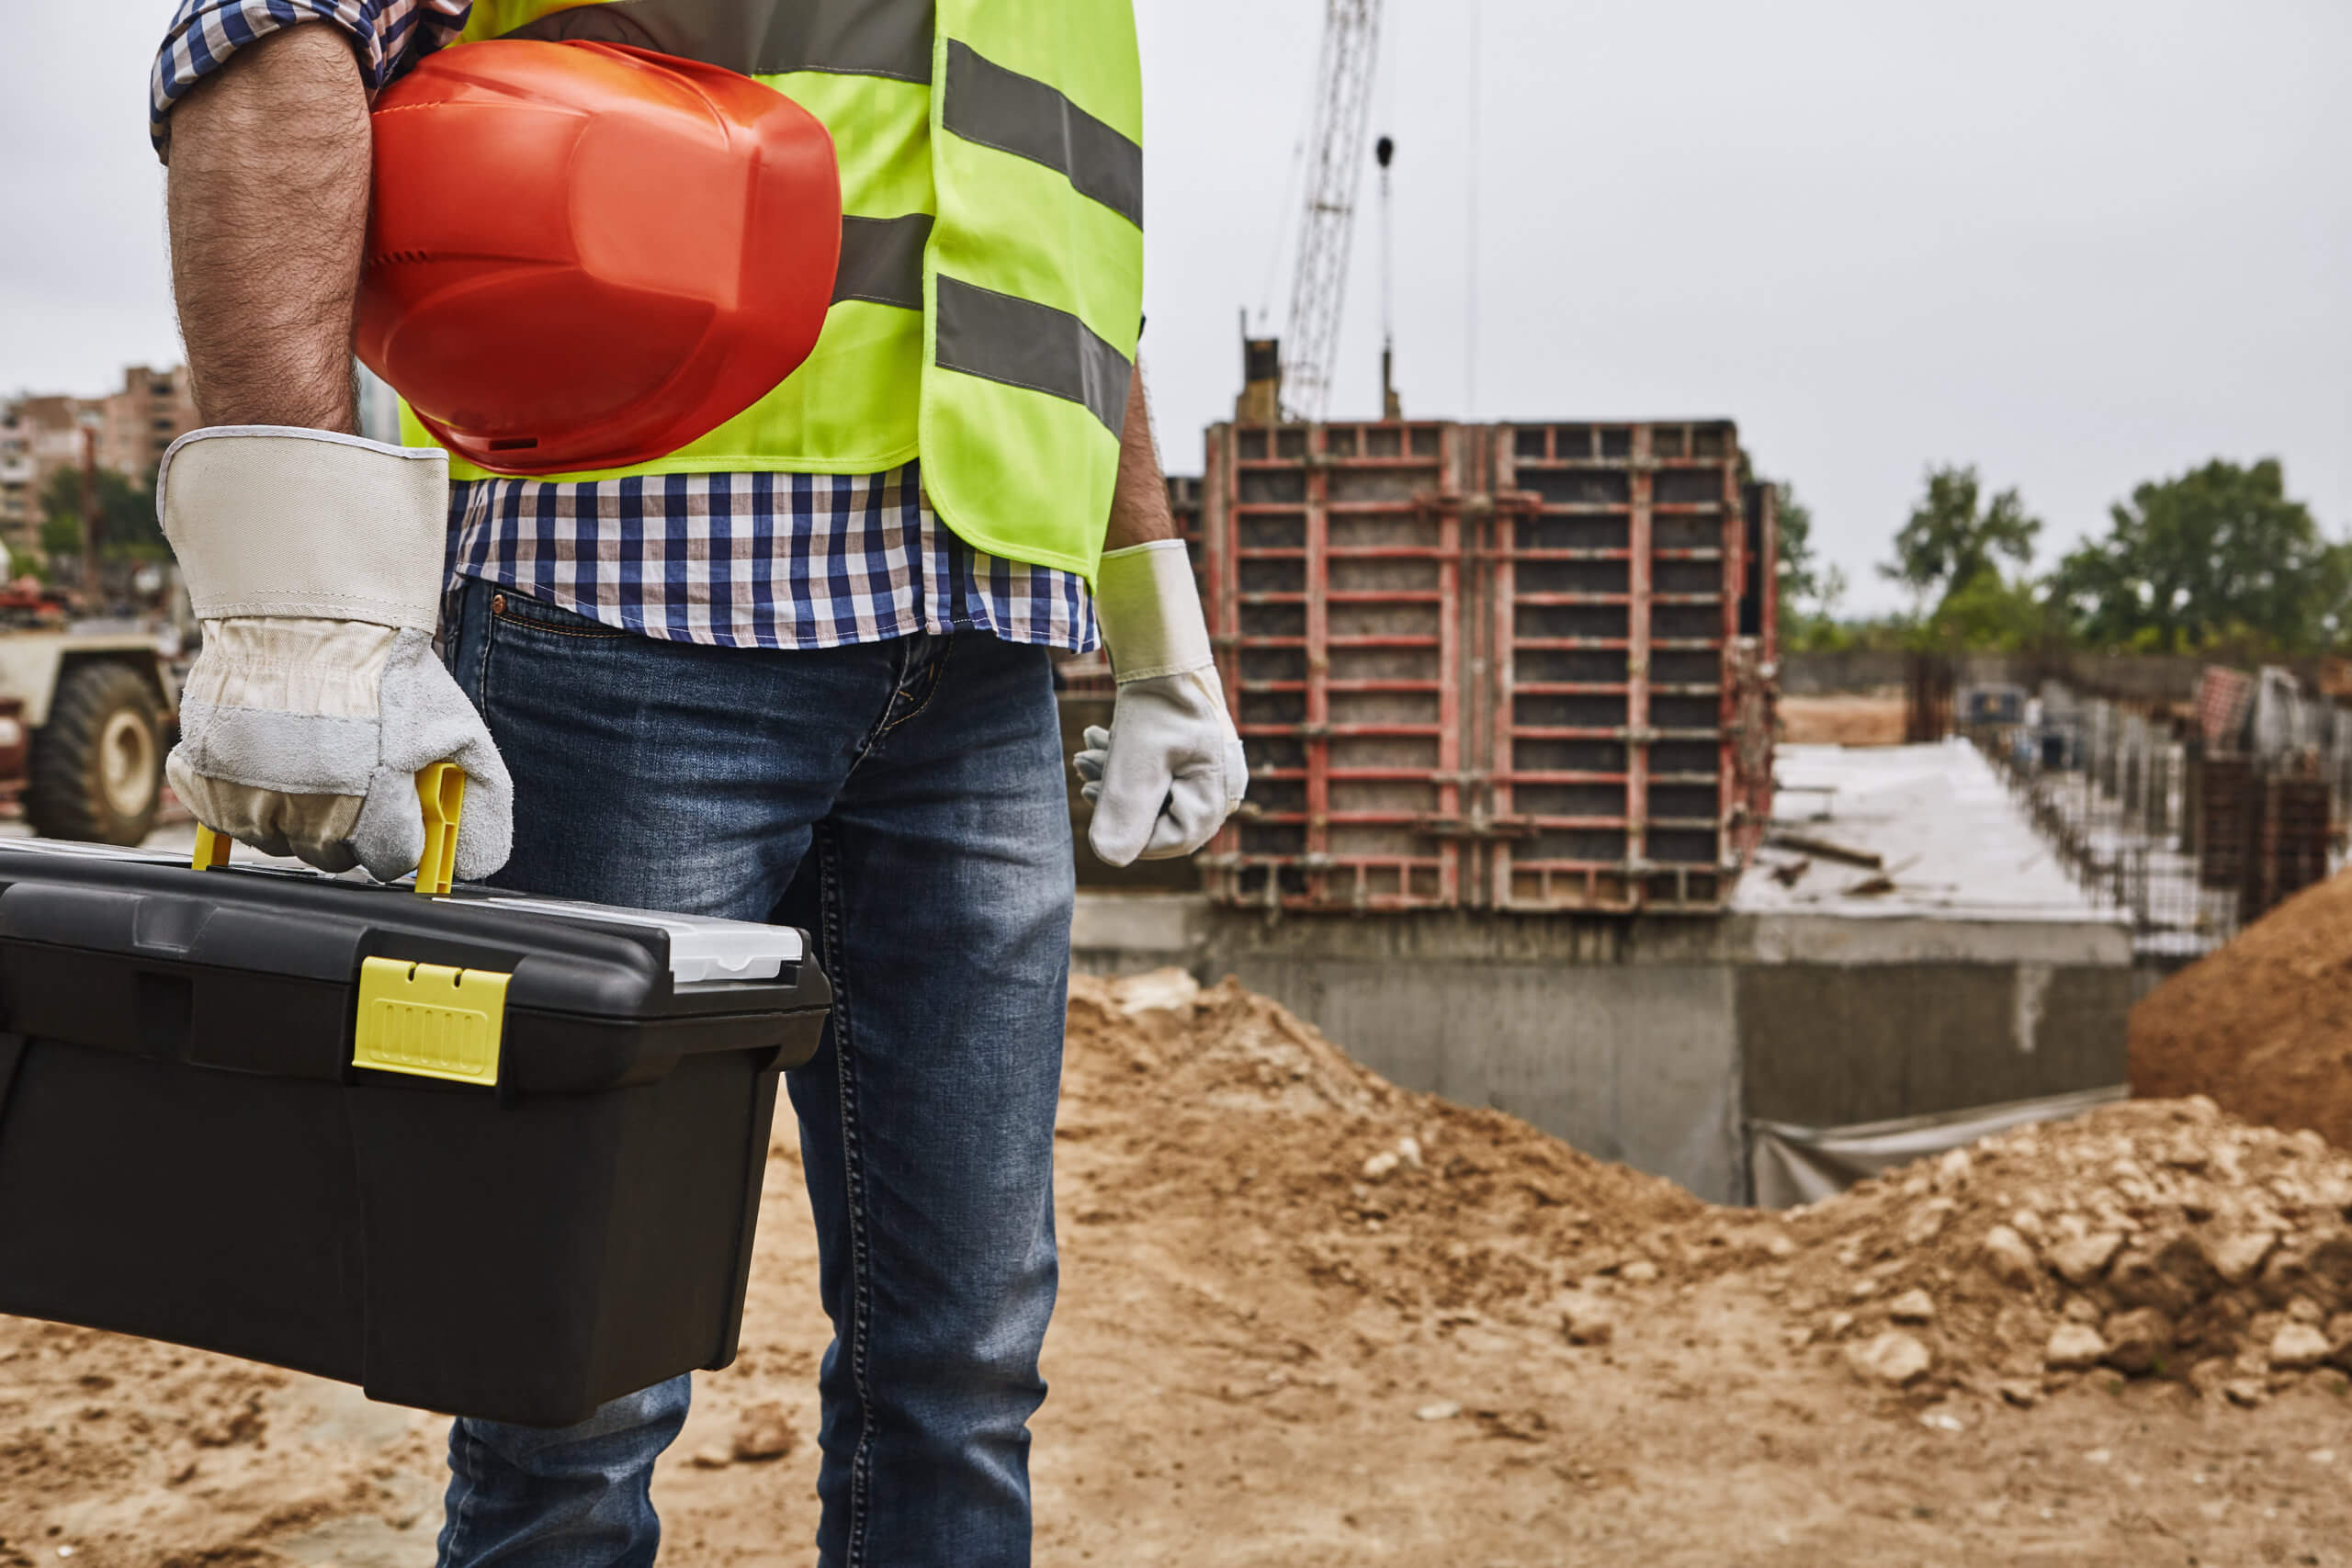 contractor Ready to work! Cropped image of a builder in working uniform holding red helmet and carrying toolbox while standing at construction site. Building concept. Protective gear. Construction concept